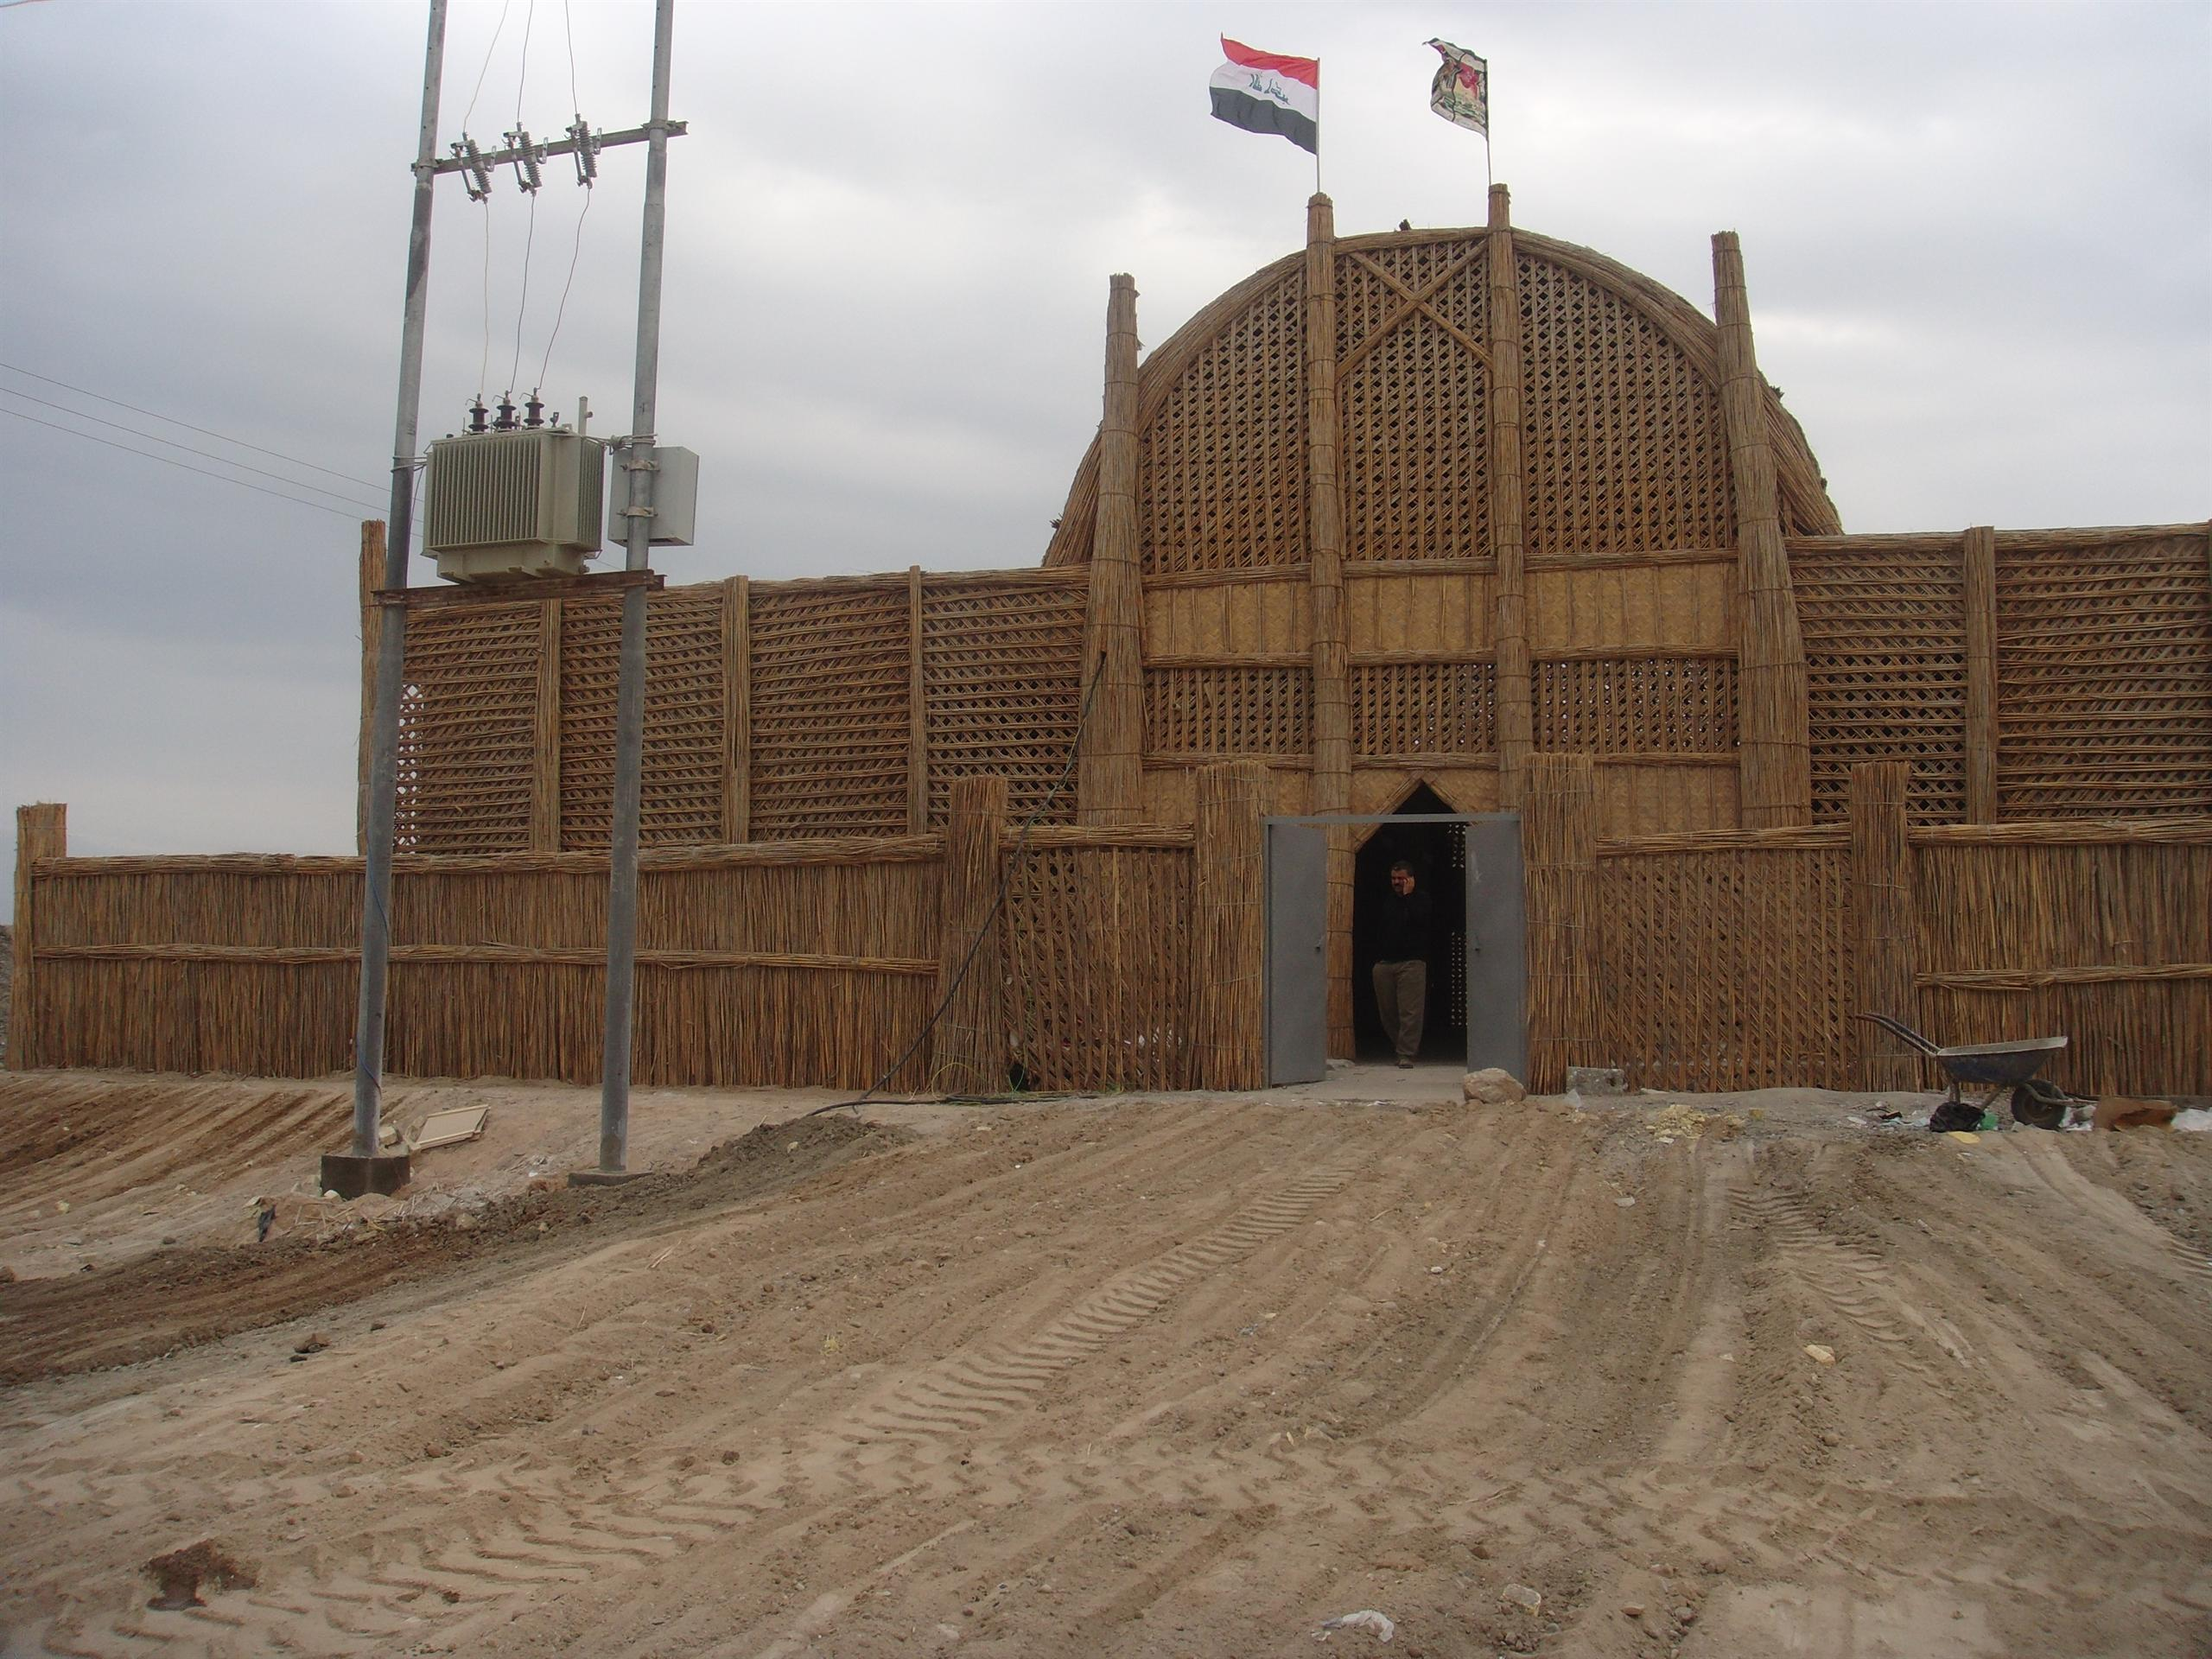 Entrance to school building in Iraq.